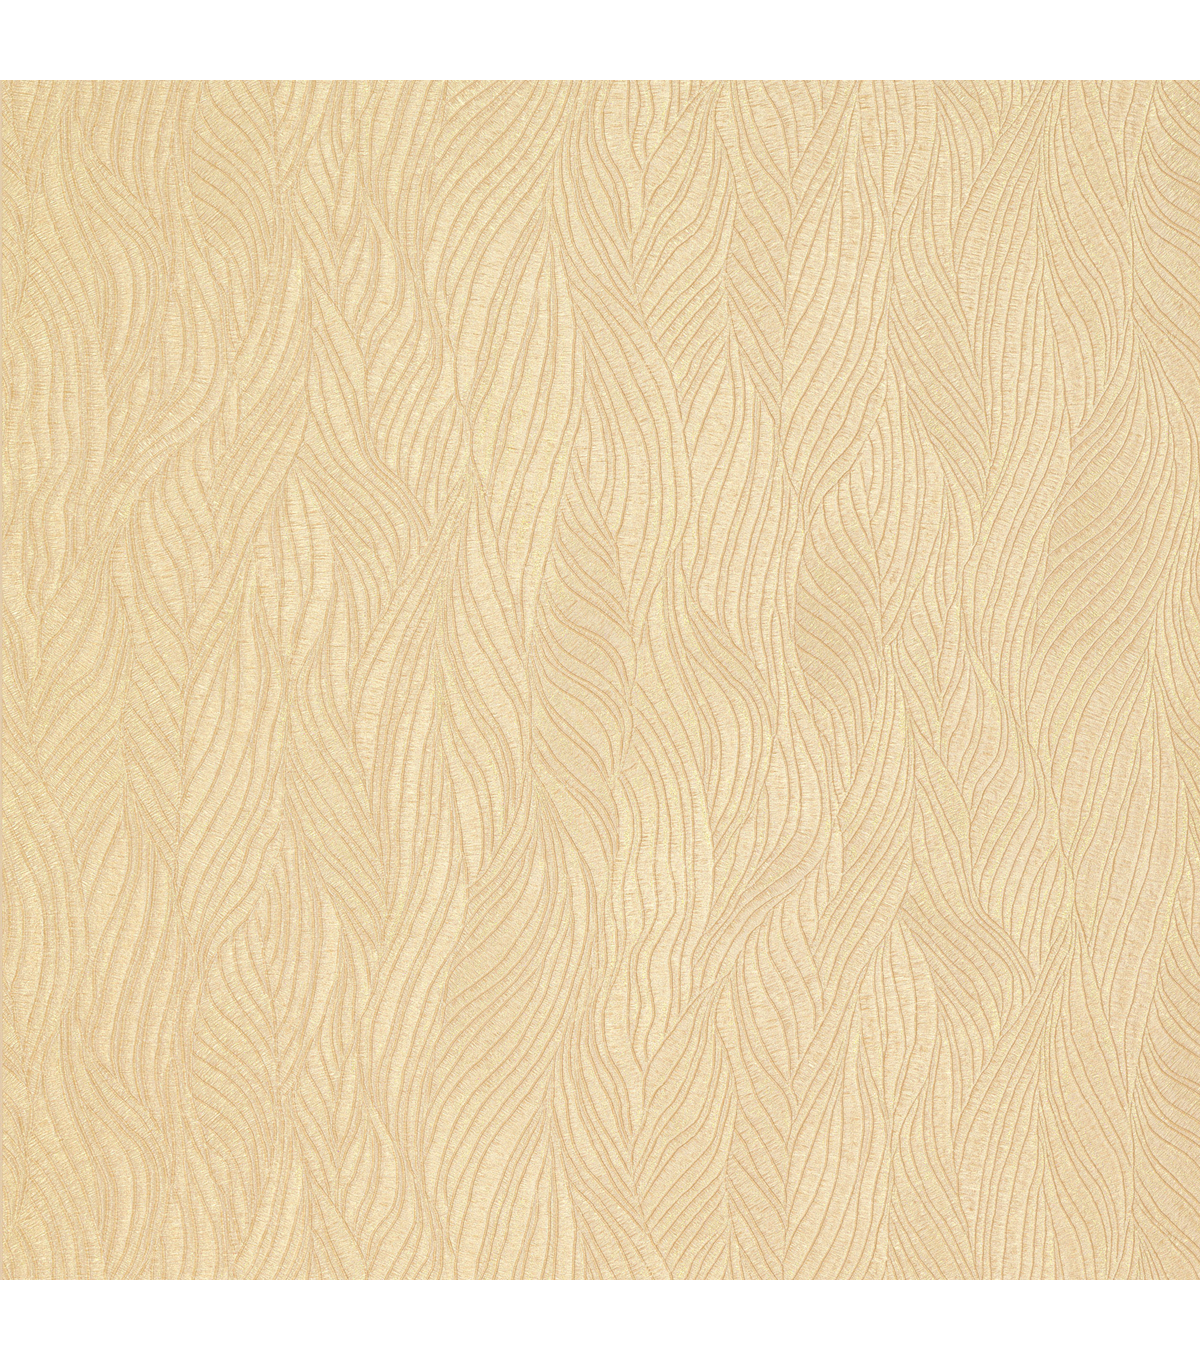 Nephi Gold Swirling Texture Wallpaper